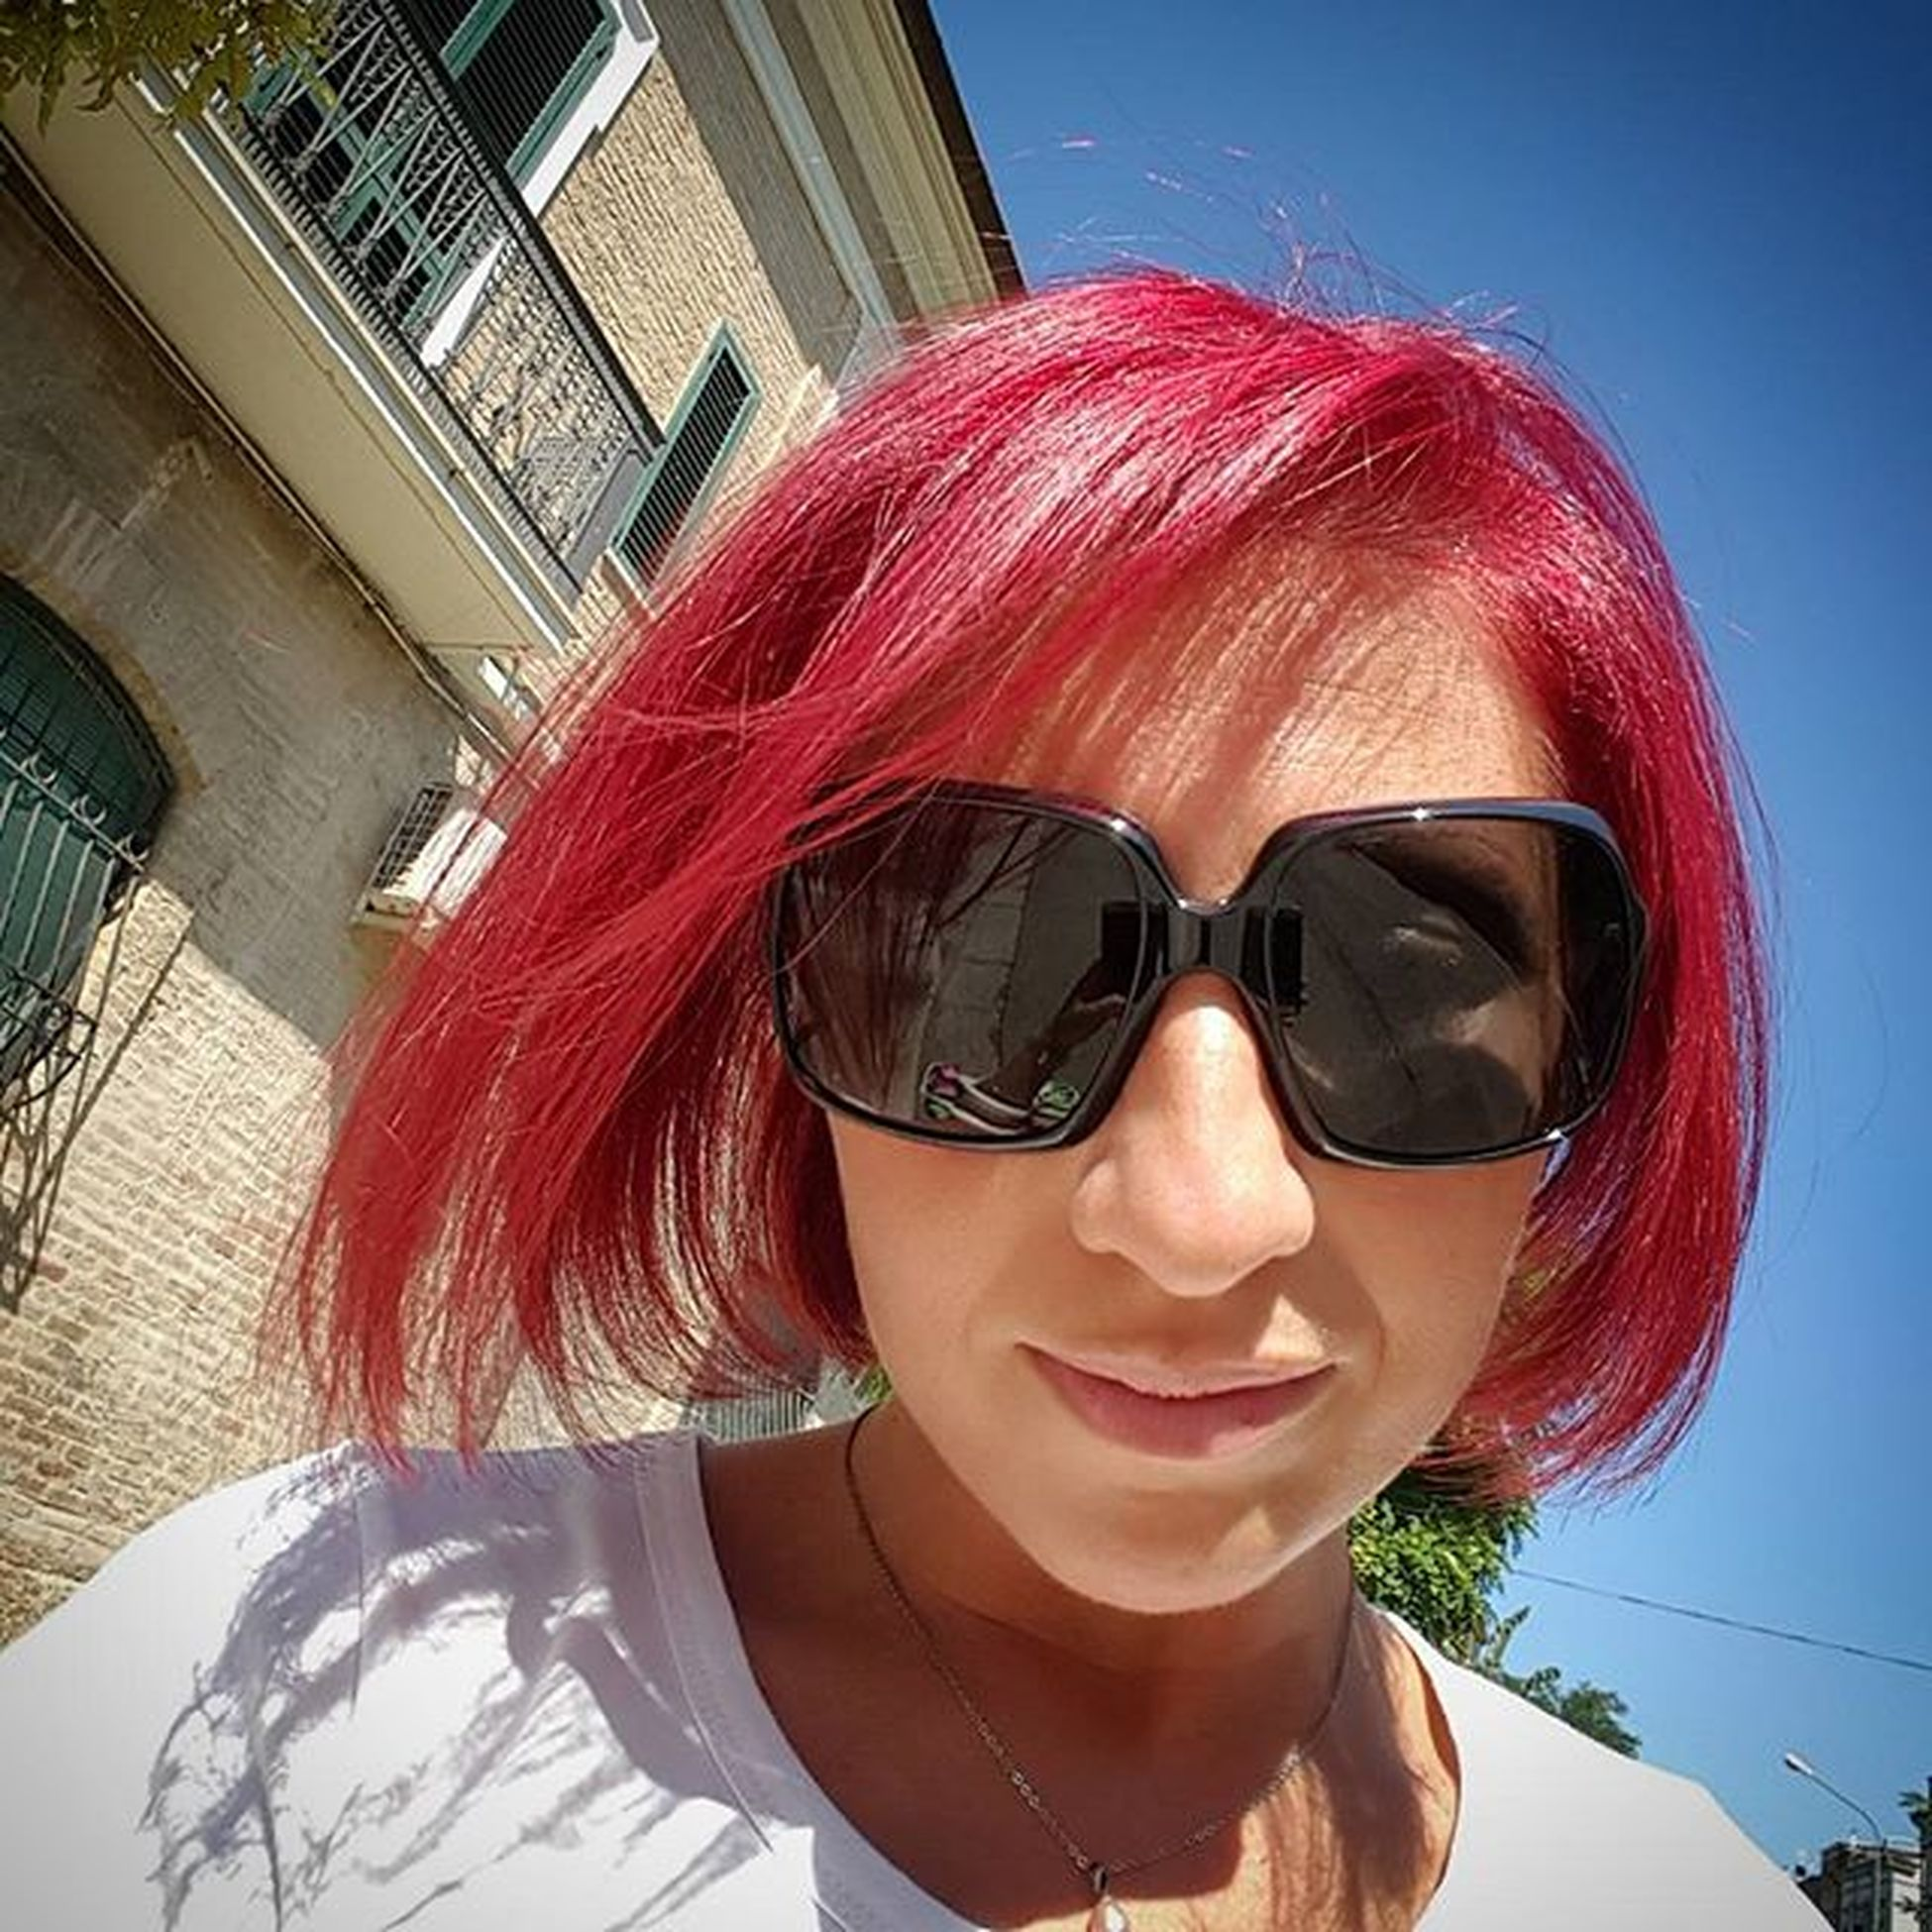 Haircut day 👍 Haircut Italy Hairstyle Redhair Lorealmajirouge Lorealmajicontrast Majicontrastmagenta Loreal Majirouge Majirel Lorealmajirouge666 Majirouge666 Wellakoleston Wellakoleston065 Kolestonperfect Wellaspecialmix Wellaspecialmix065 RedHAIR ❤ Red Hair Selfies Selfie ✌ Redhead Redismycolor Haircolor Haircolour